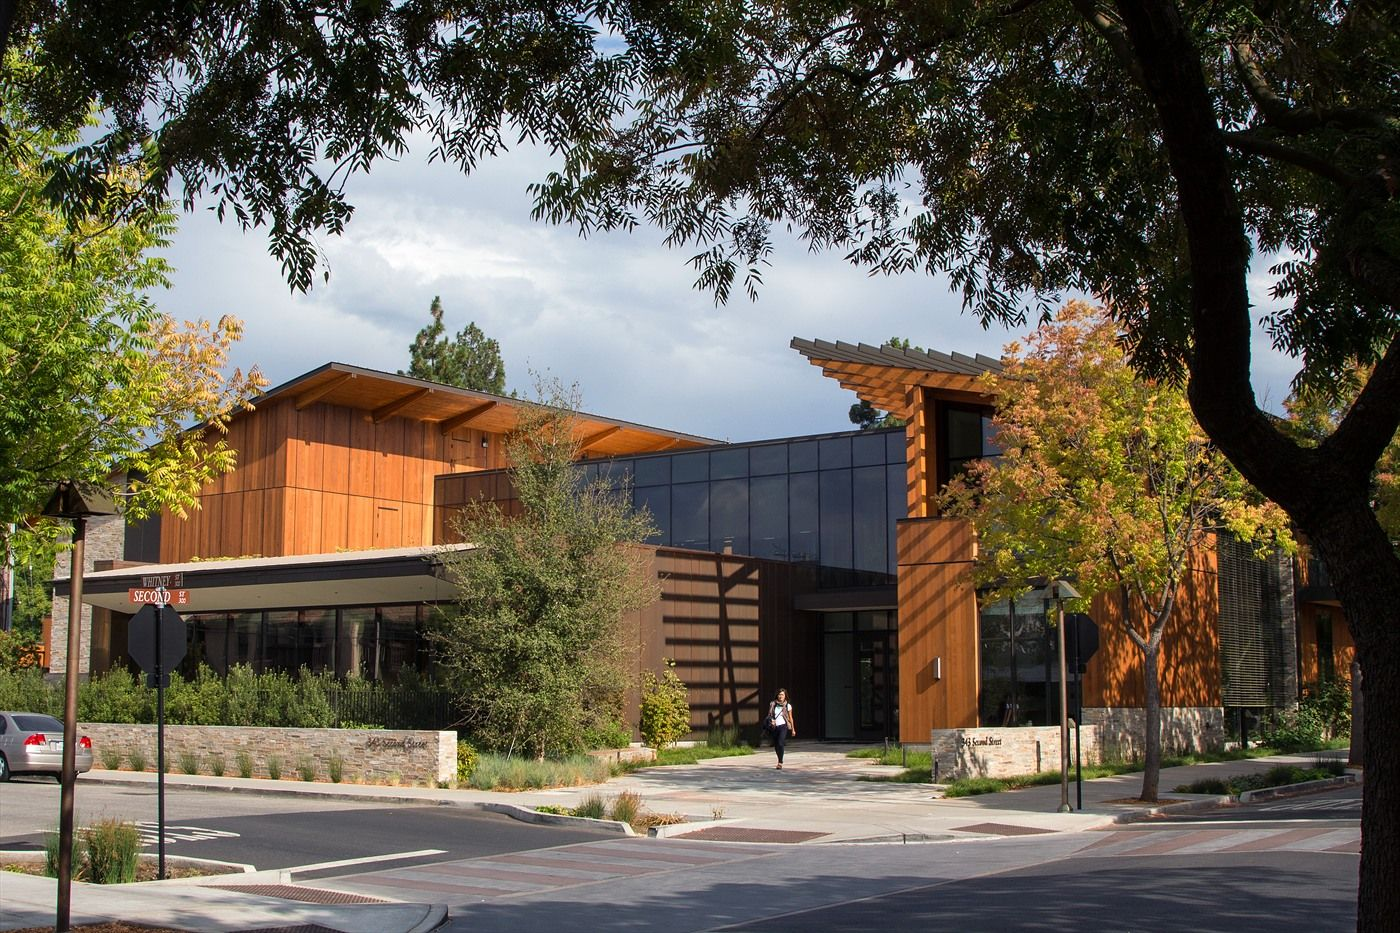 Did you know you can take a tour of the David and Lucille Packard Foundation building? Sign up now for a free guided tour on August 14th. See how the building was designed to achieve LEED® Platinum certification and operate at net zero energy status. ICS is proud to have worked on this amazing and innovative project! Sign up at: http://packardfoundation.eventbrite.com/